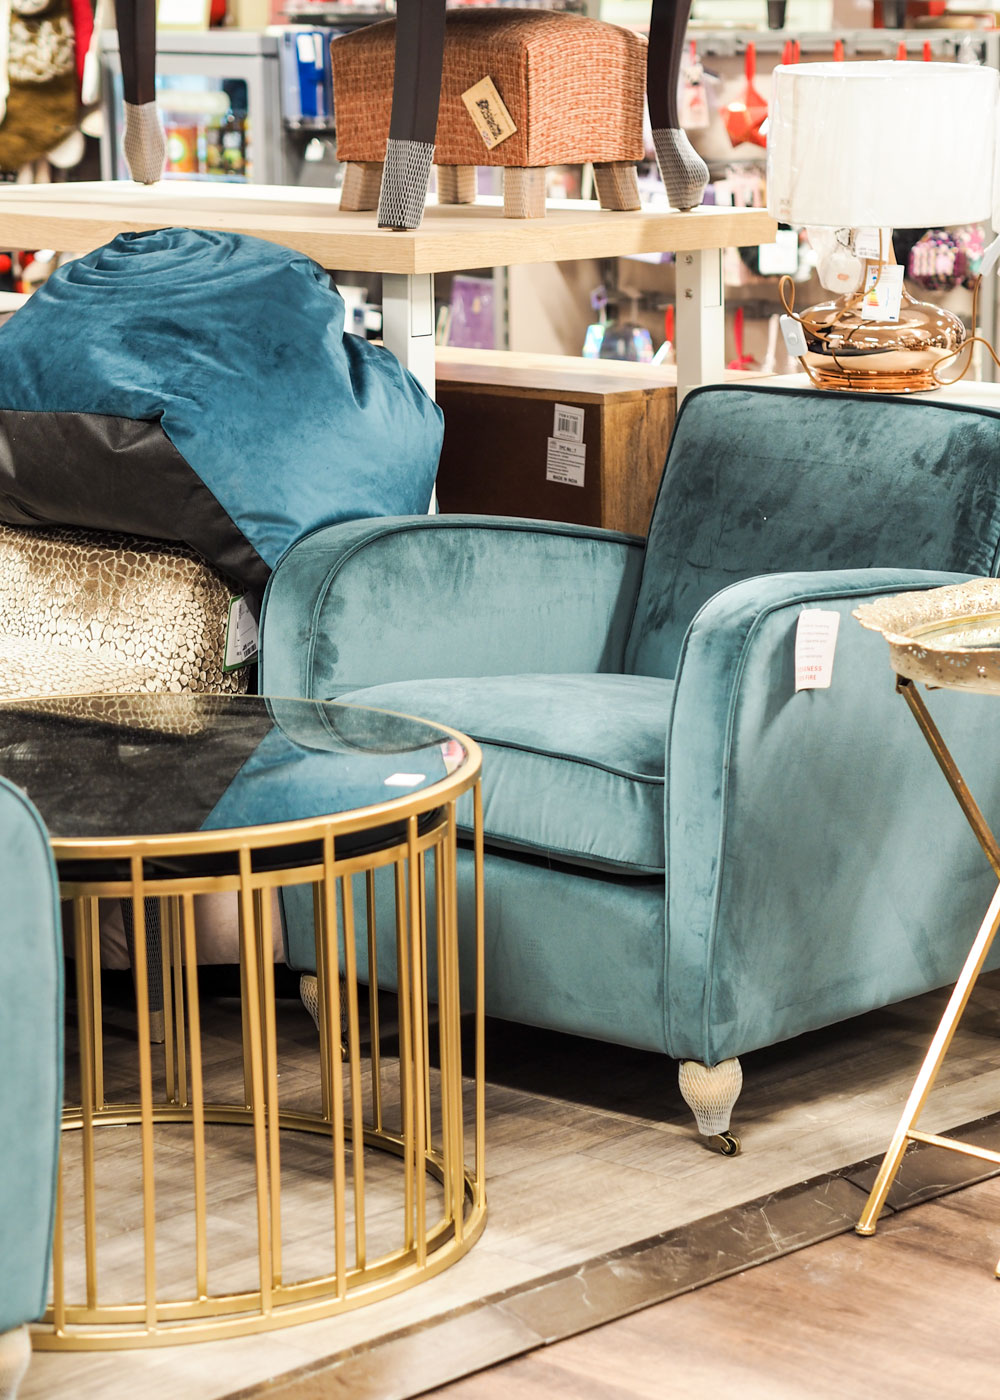 ... The Guiseley Homesense store opened earlier this year and today I'm showing you why ...